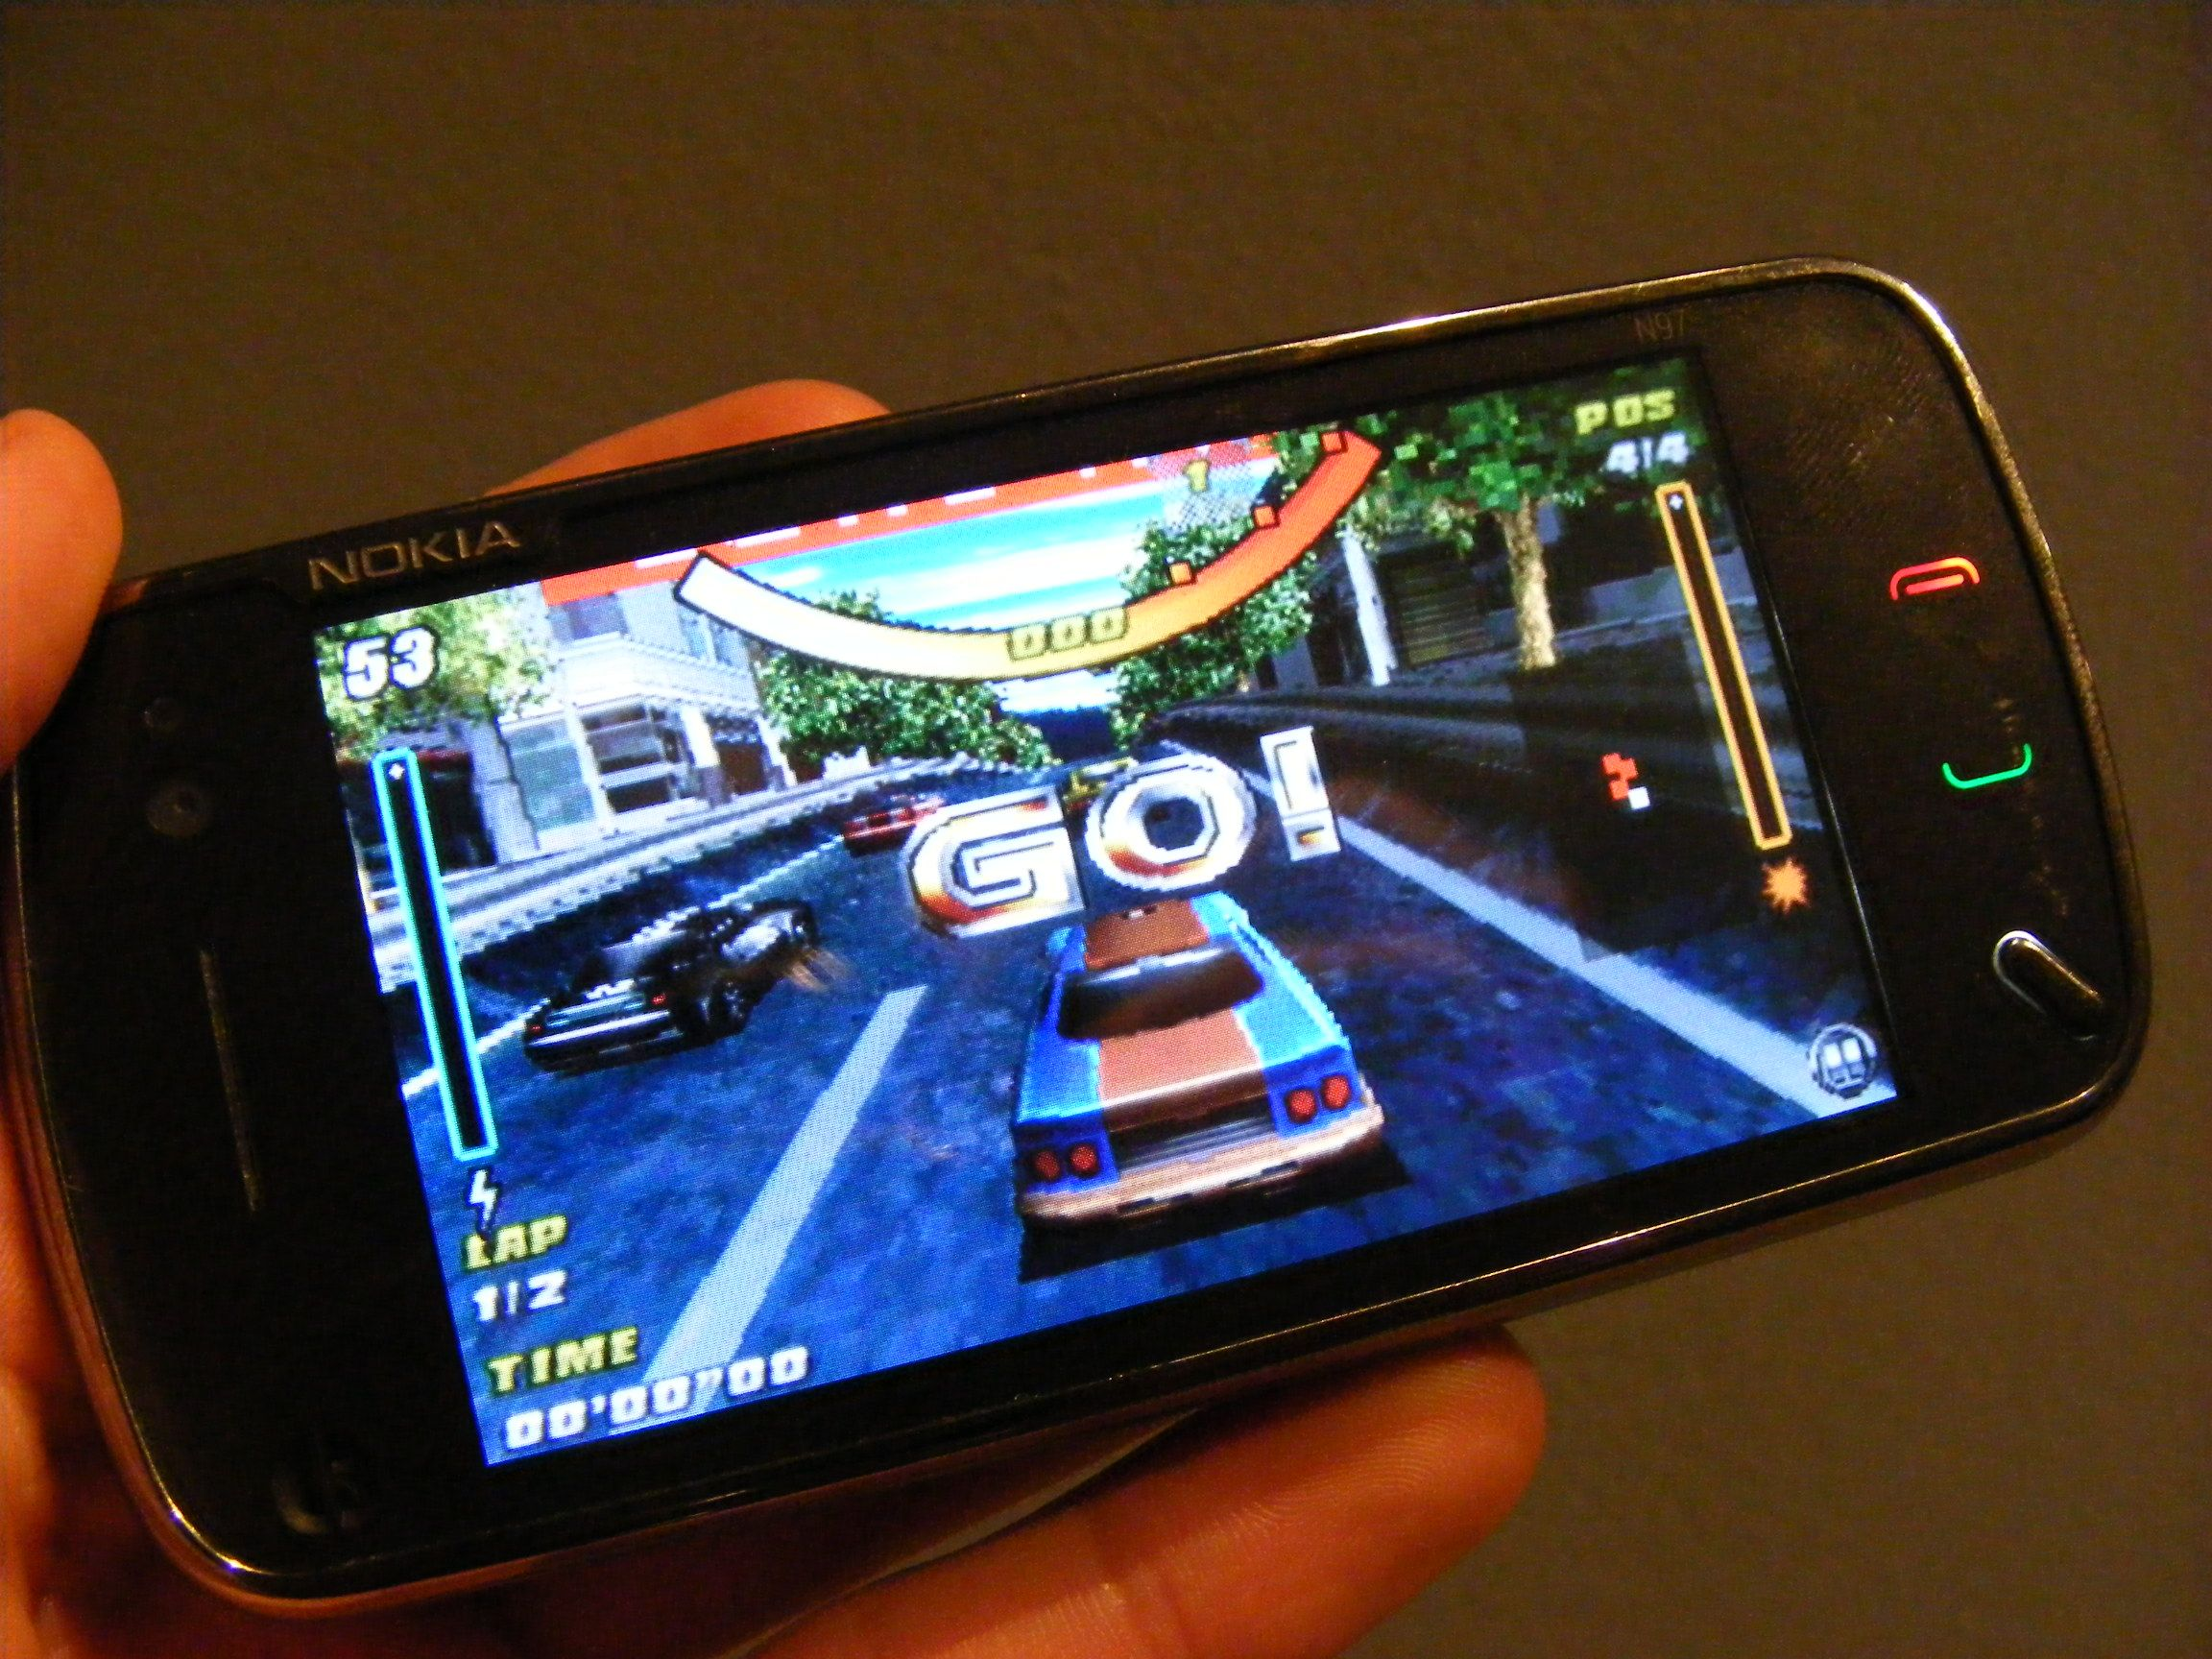 Car Sensor Game 3D Symbian Game - Download for free on PHONEKY